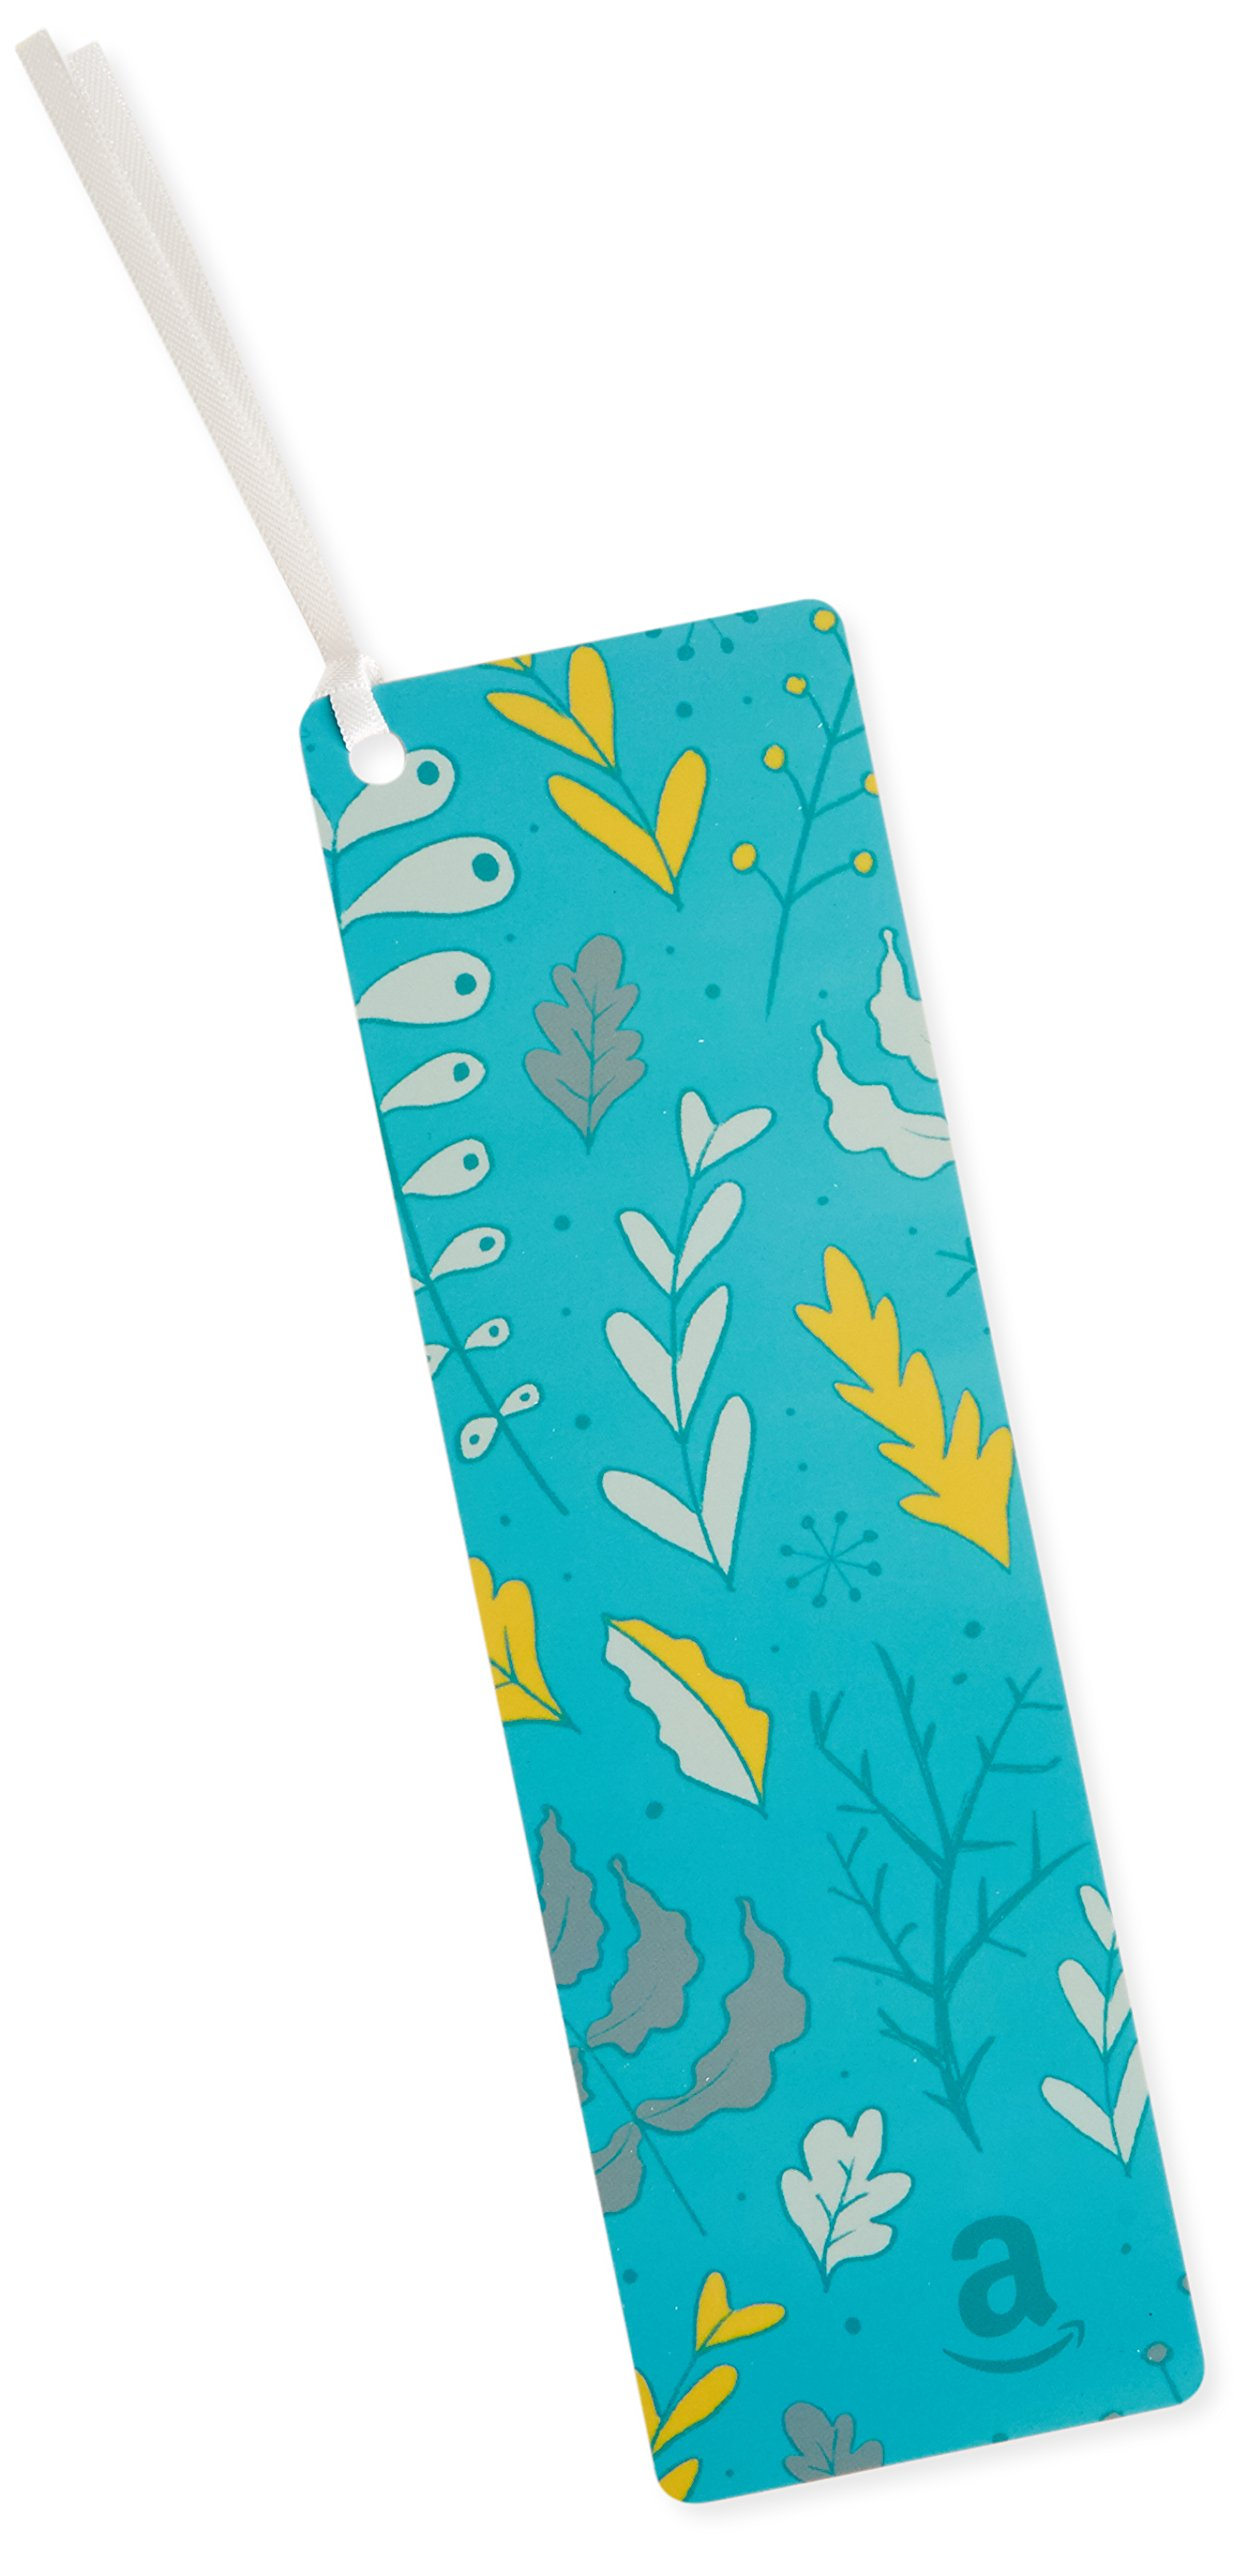 Amazon.com $25 Gift Card as a Bookmark (Leaves Design) by Amazon